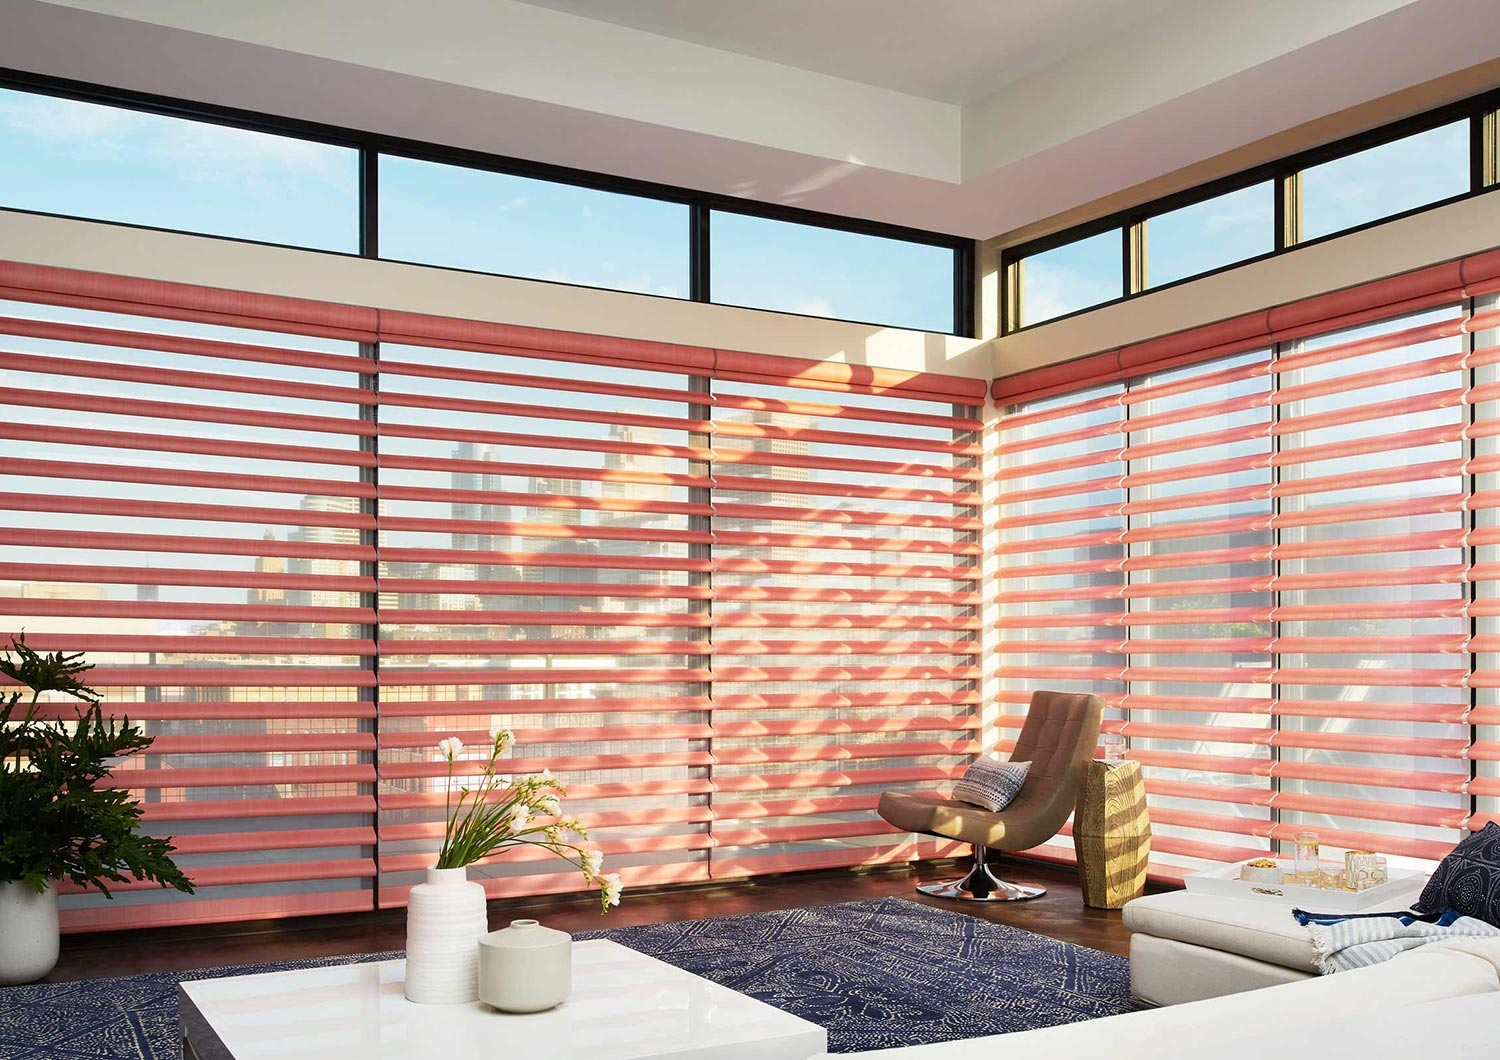 Powerview helps make your window treatments safe and energy efficient.